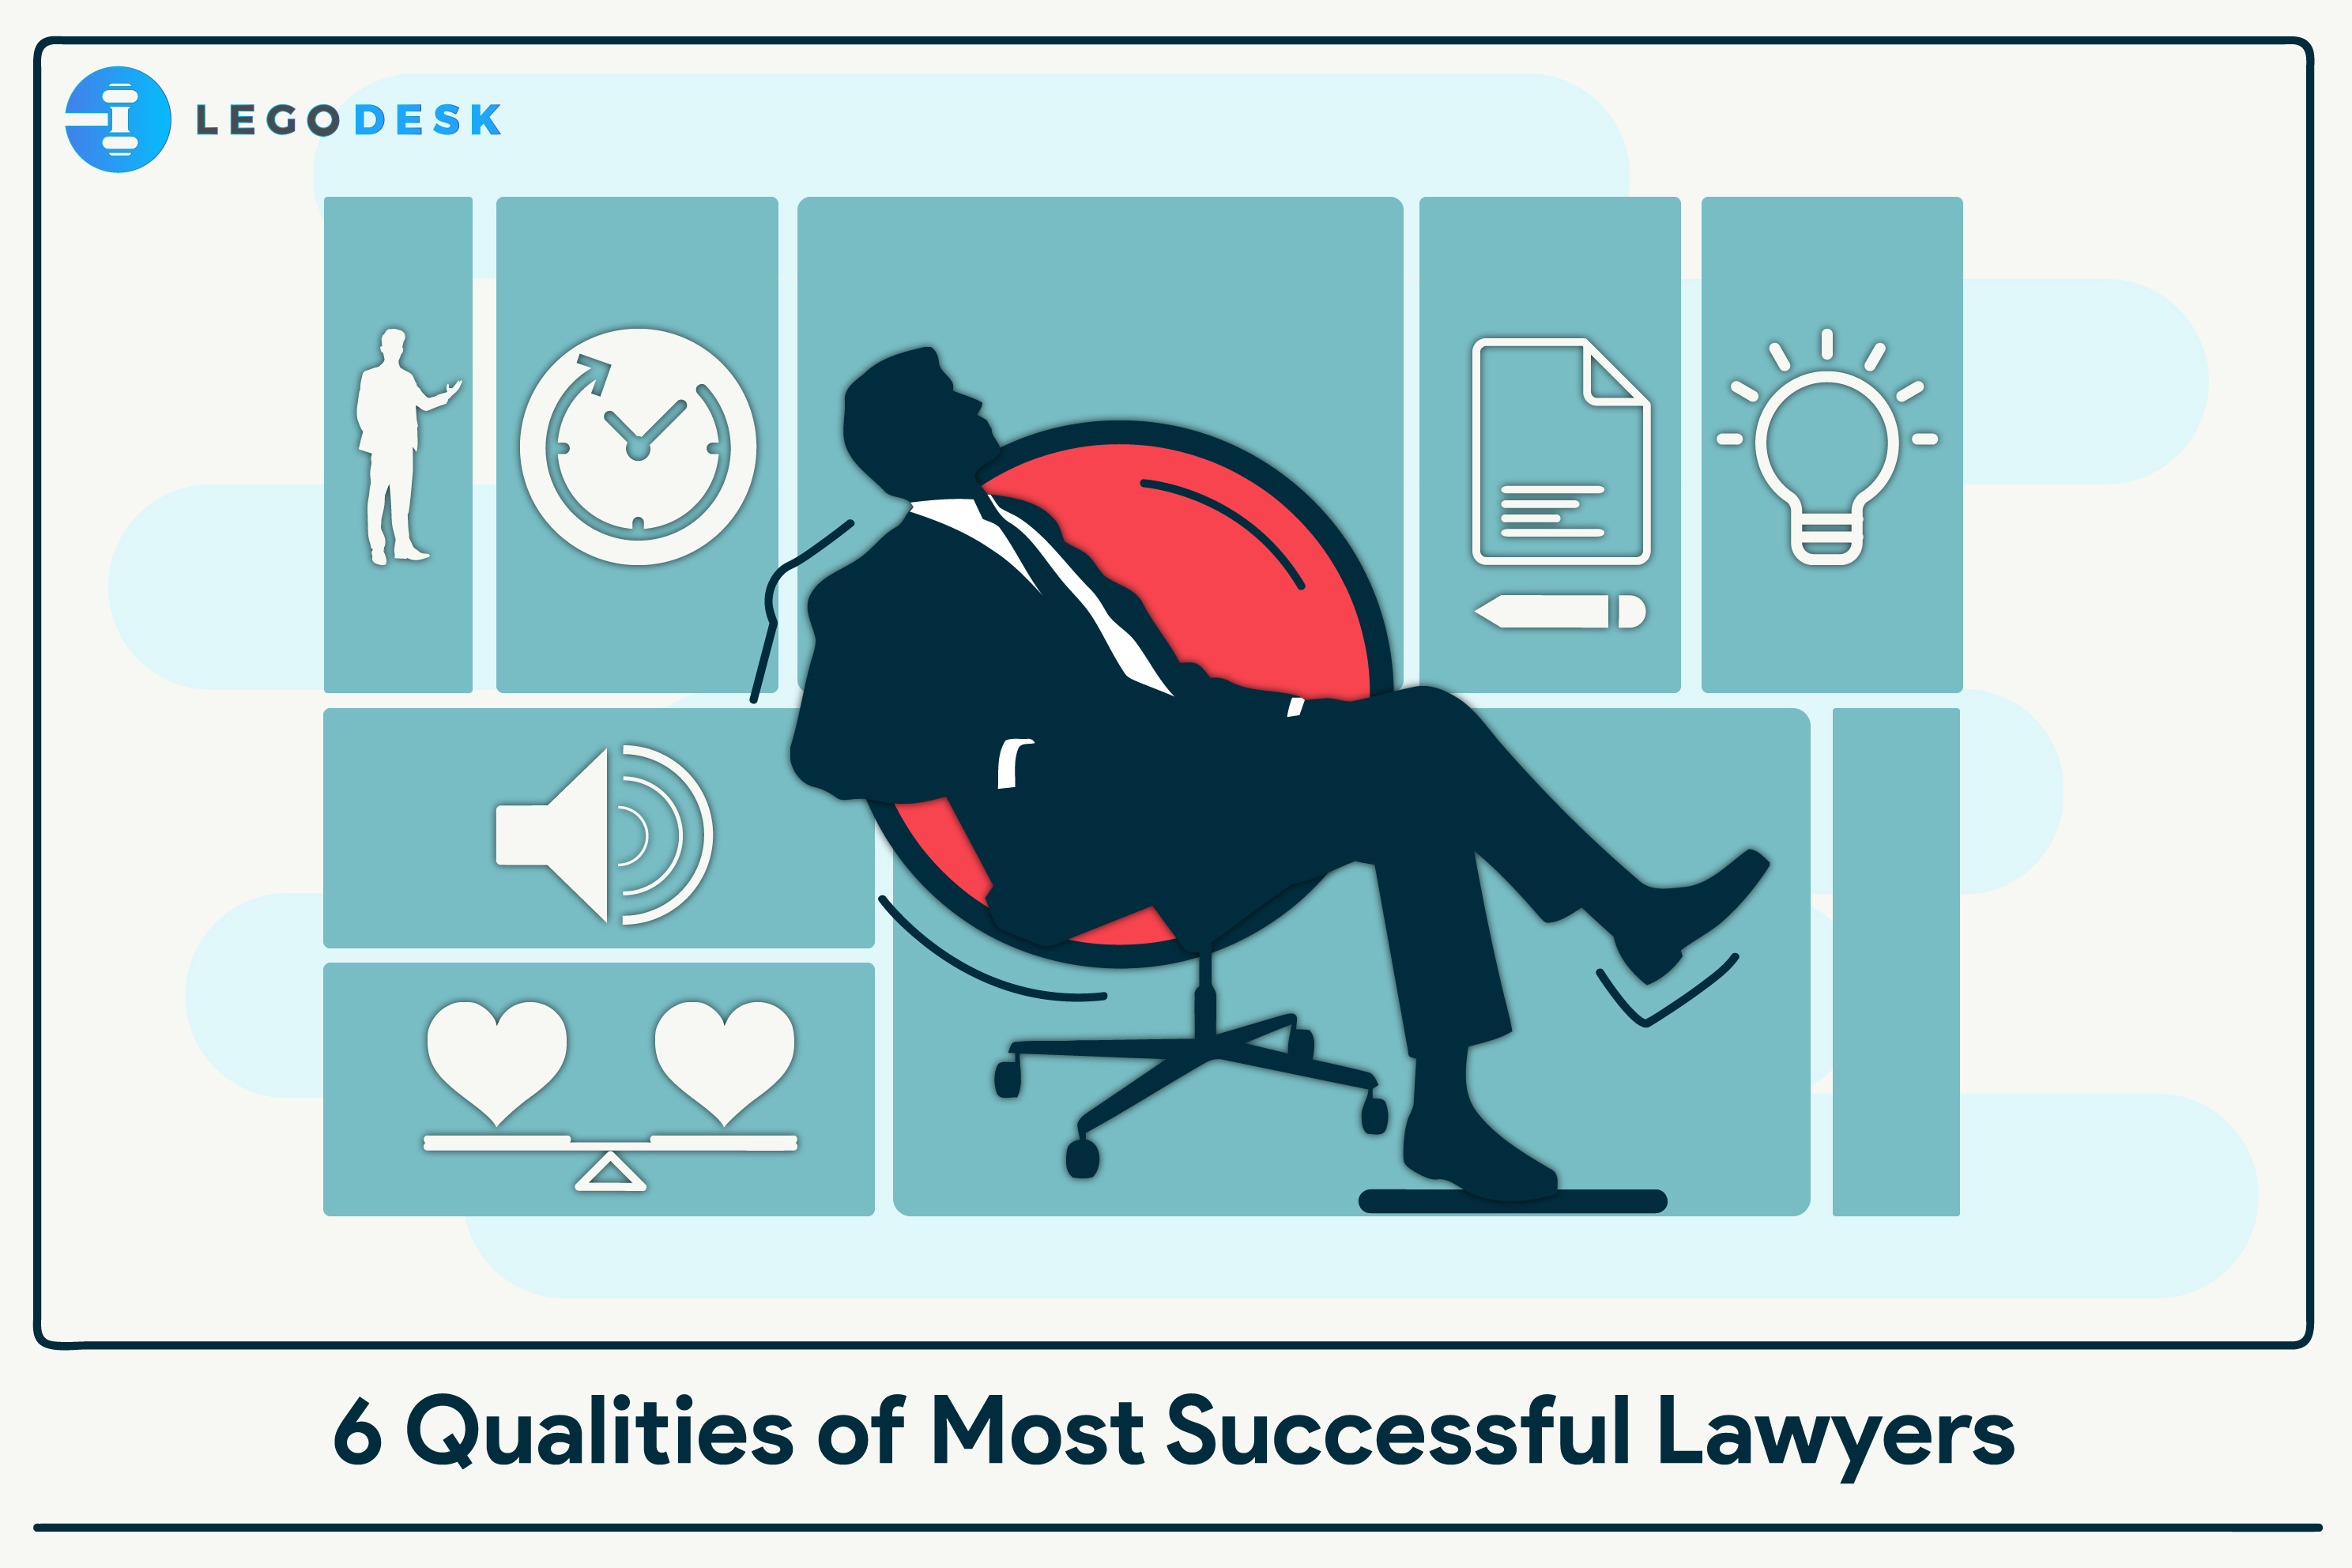 6 qualities of most successful lawyers